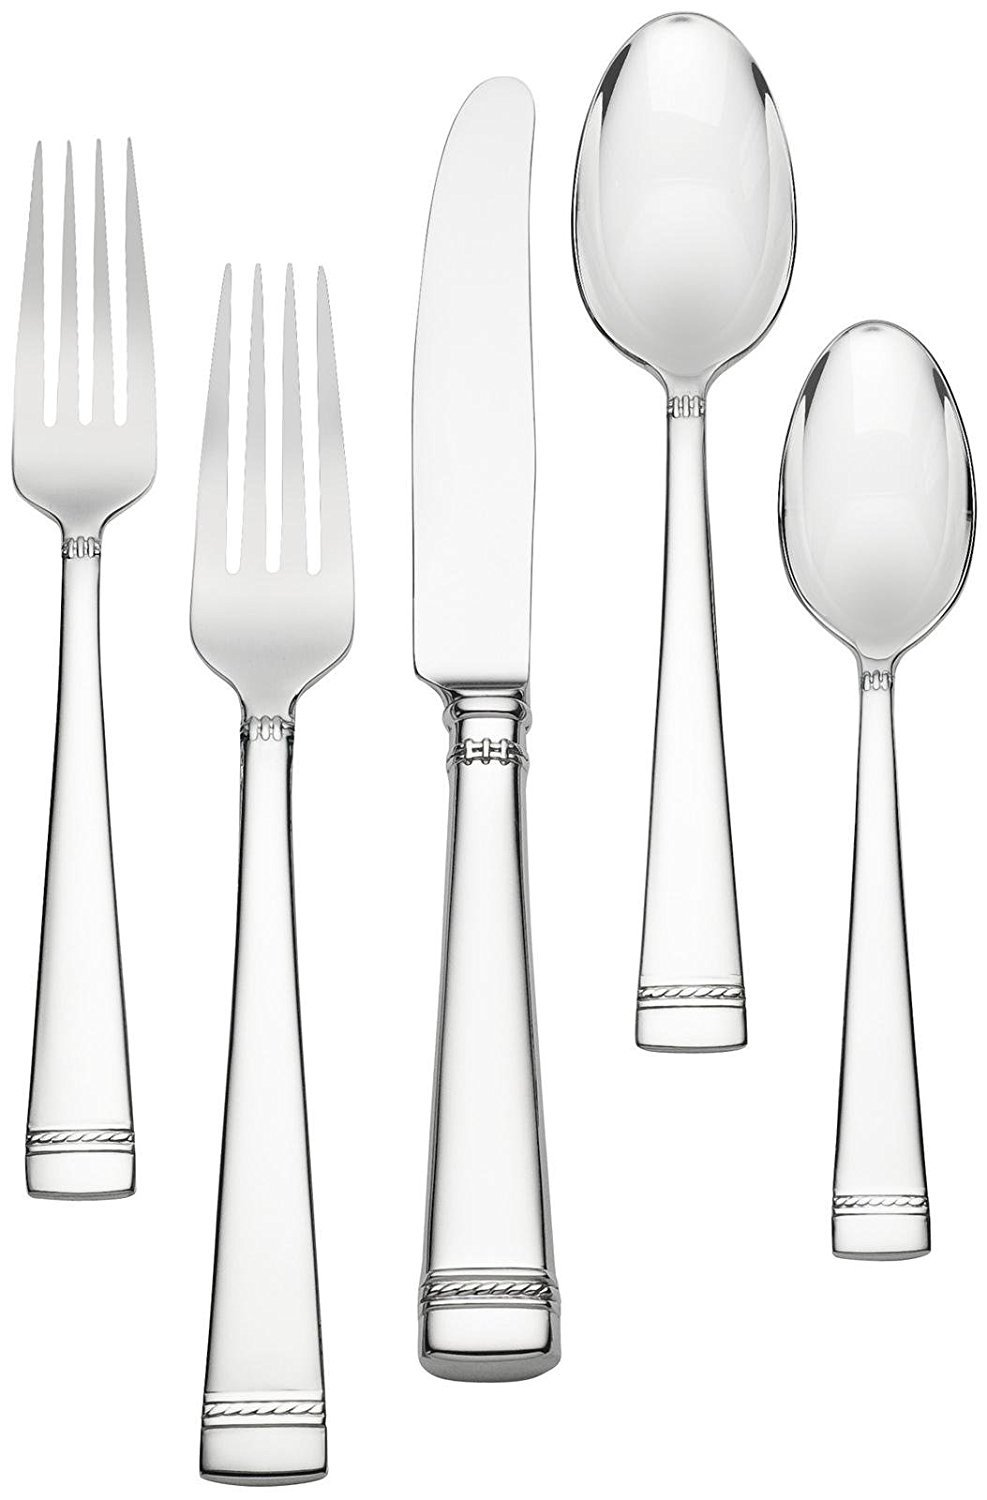 Porcelain China Vera Wang Wedgwood With Love 44 Piece Stainless Flatware Service For 8 New Pottery Porcelain Glass Ubi Uz